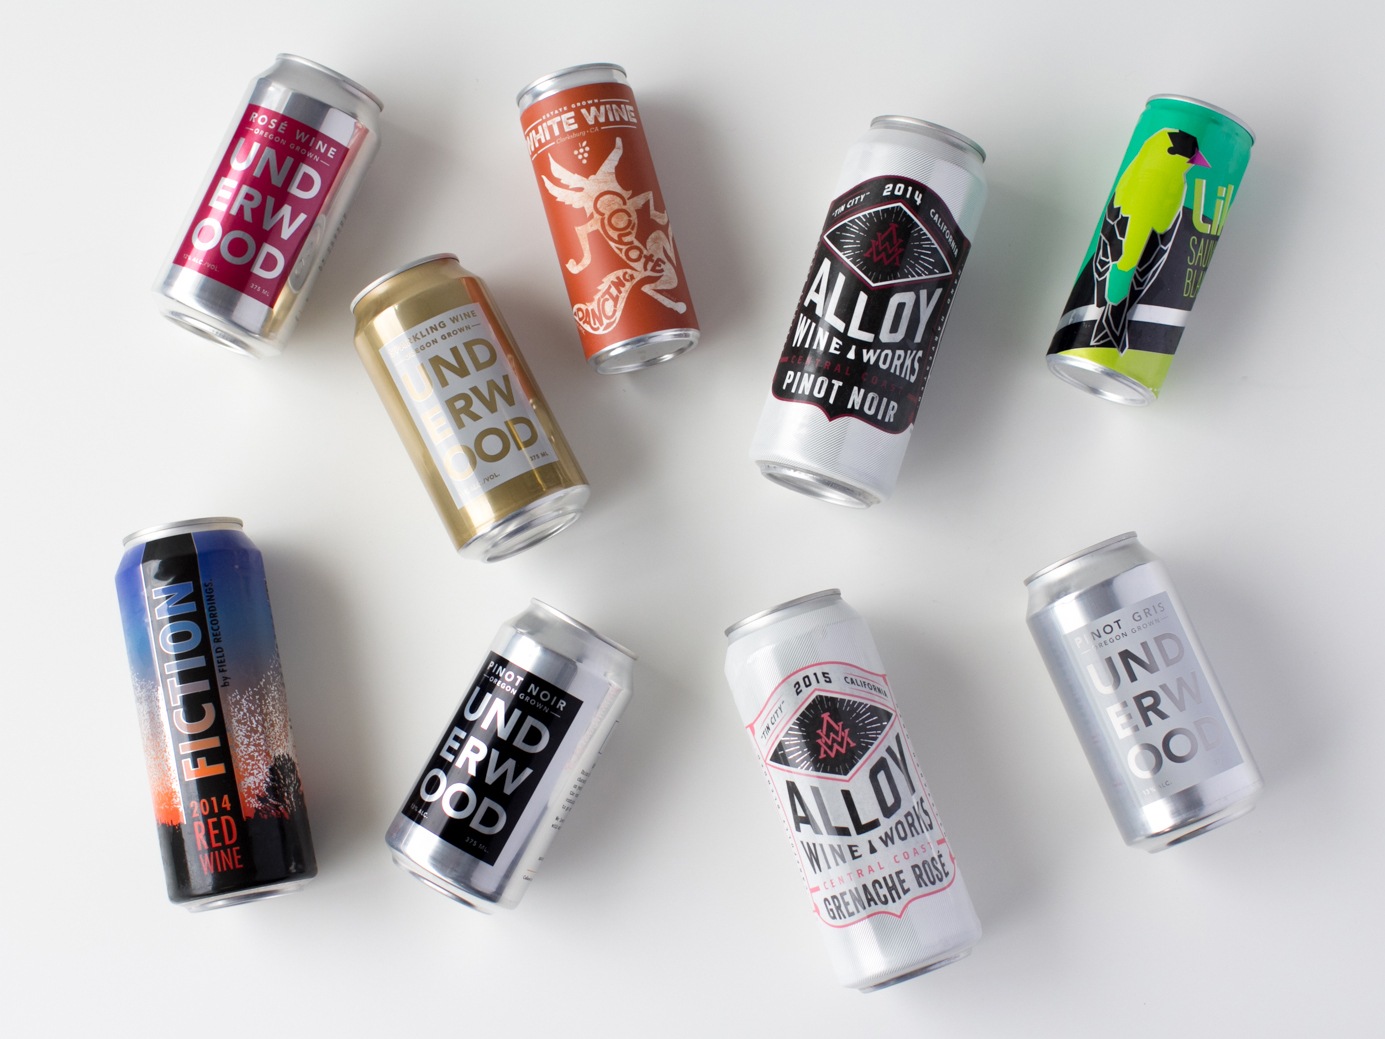 The best canned wines from the United States